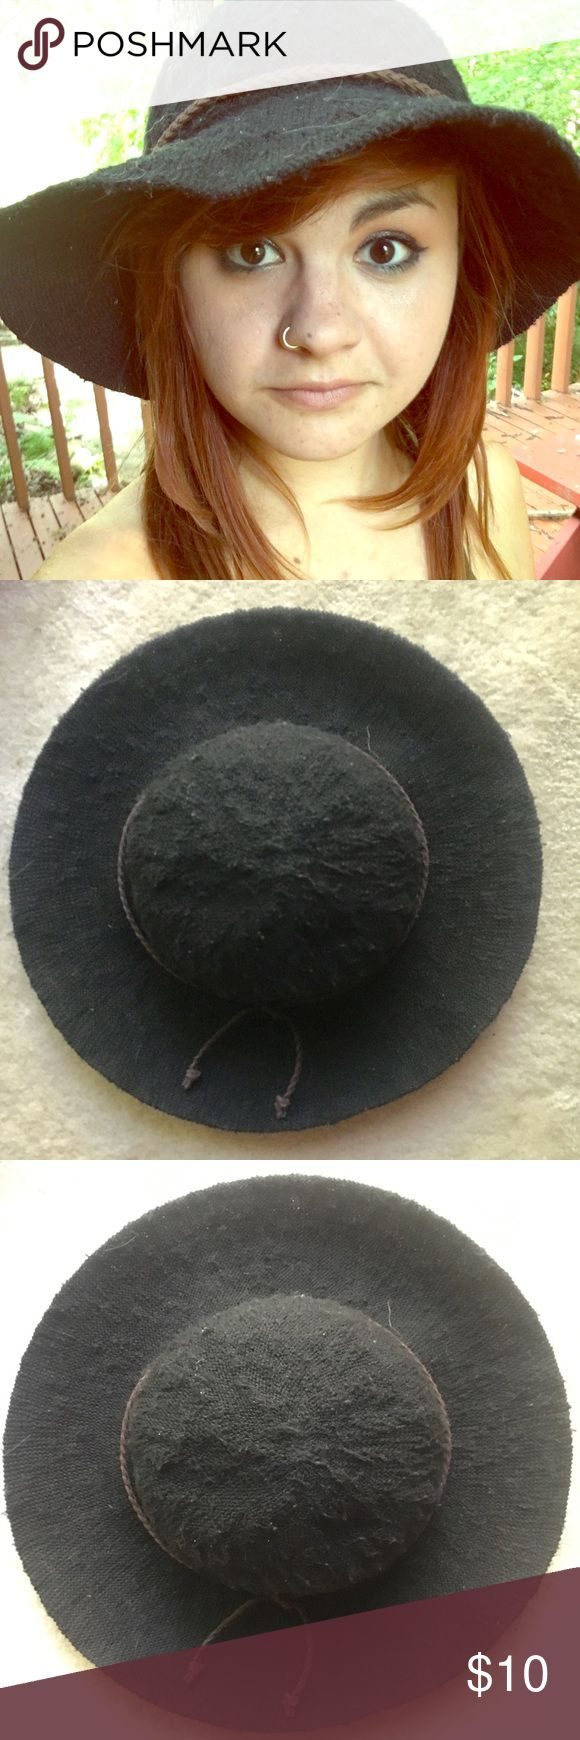 Black Flop Hat Black floppy hat with brown braided string warped around it from Forever 21. Great for laying on the beach, gardening, or just to add some style to your outfit! It's only been worn a few times and is in great condition. Forever 21 Accessories Hats